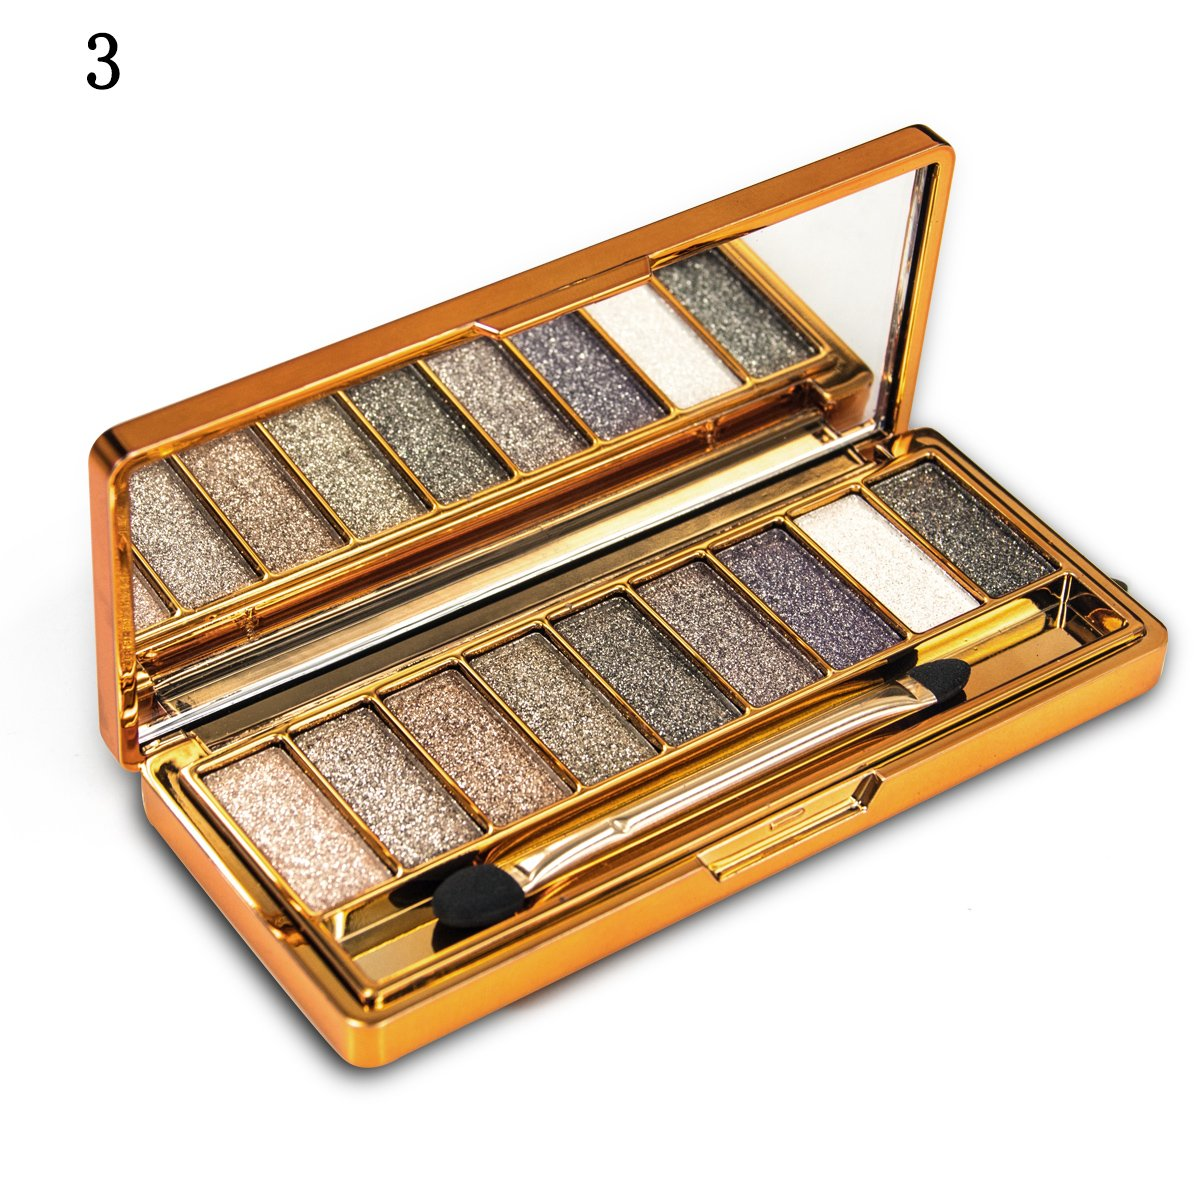 Sporthway Women 9 Colors Waterproof Make UP Glitter Eyeshadow Palette with Brush (Color 3)